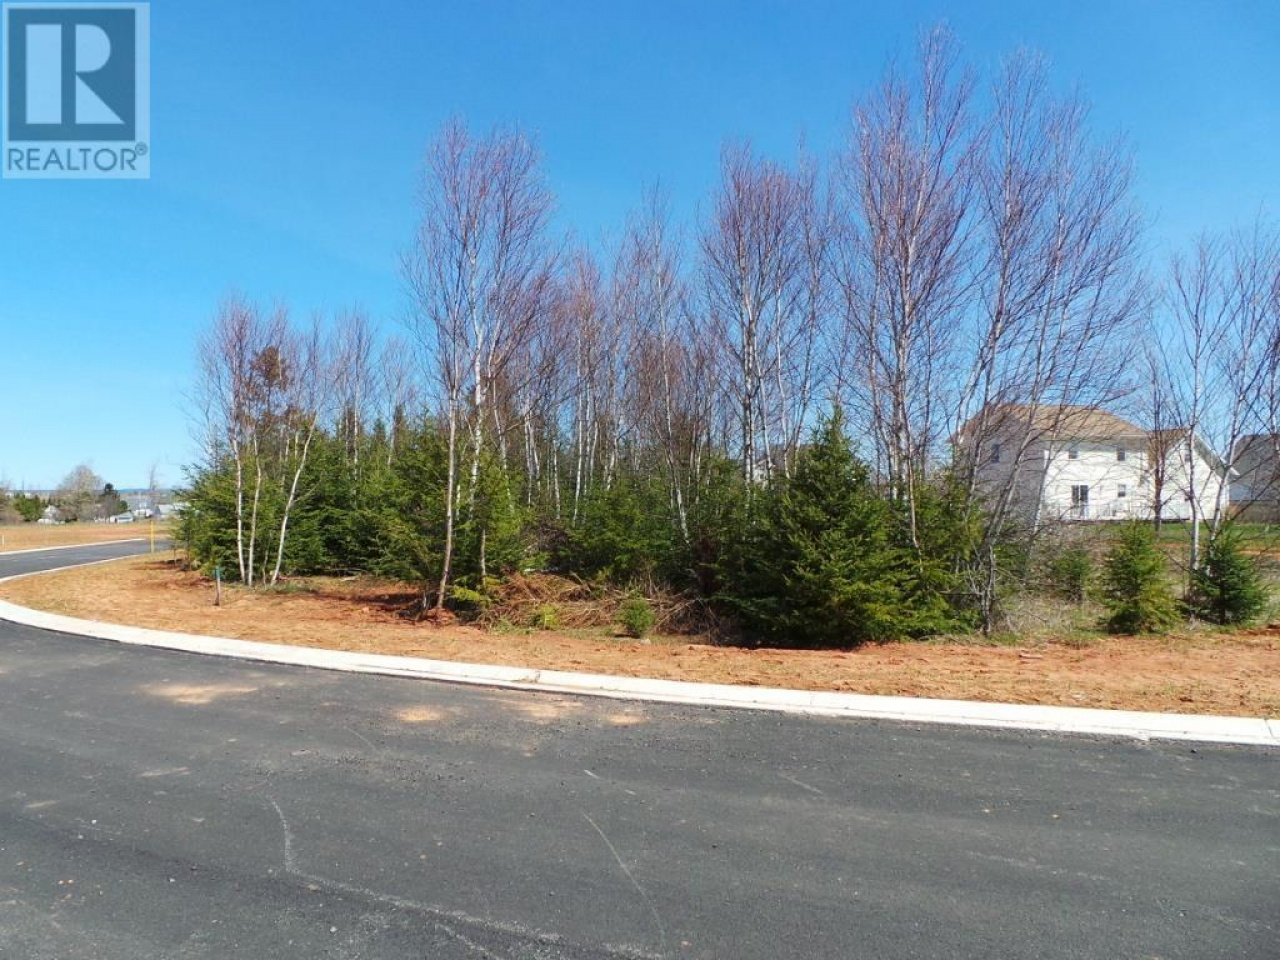 Lot 20-10 Waterview HeightsLot 20-10 Waterview Heights, Summerside, Prince Edward Island C1N6H5, ,Vacant Land,For Sale,Lot 20-10 Waterview Heights,202111415